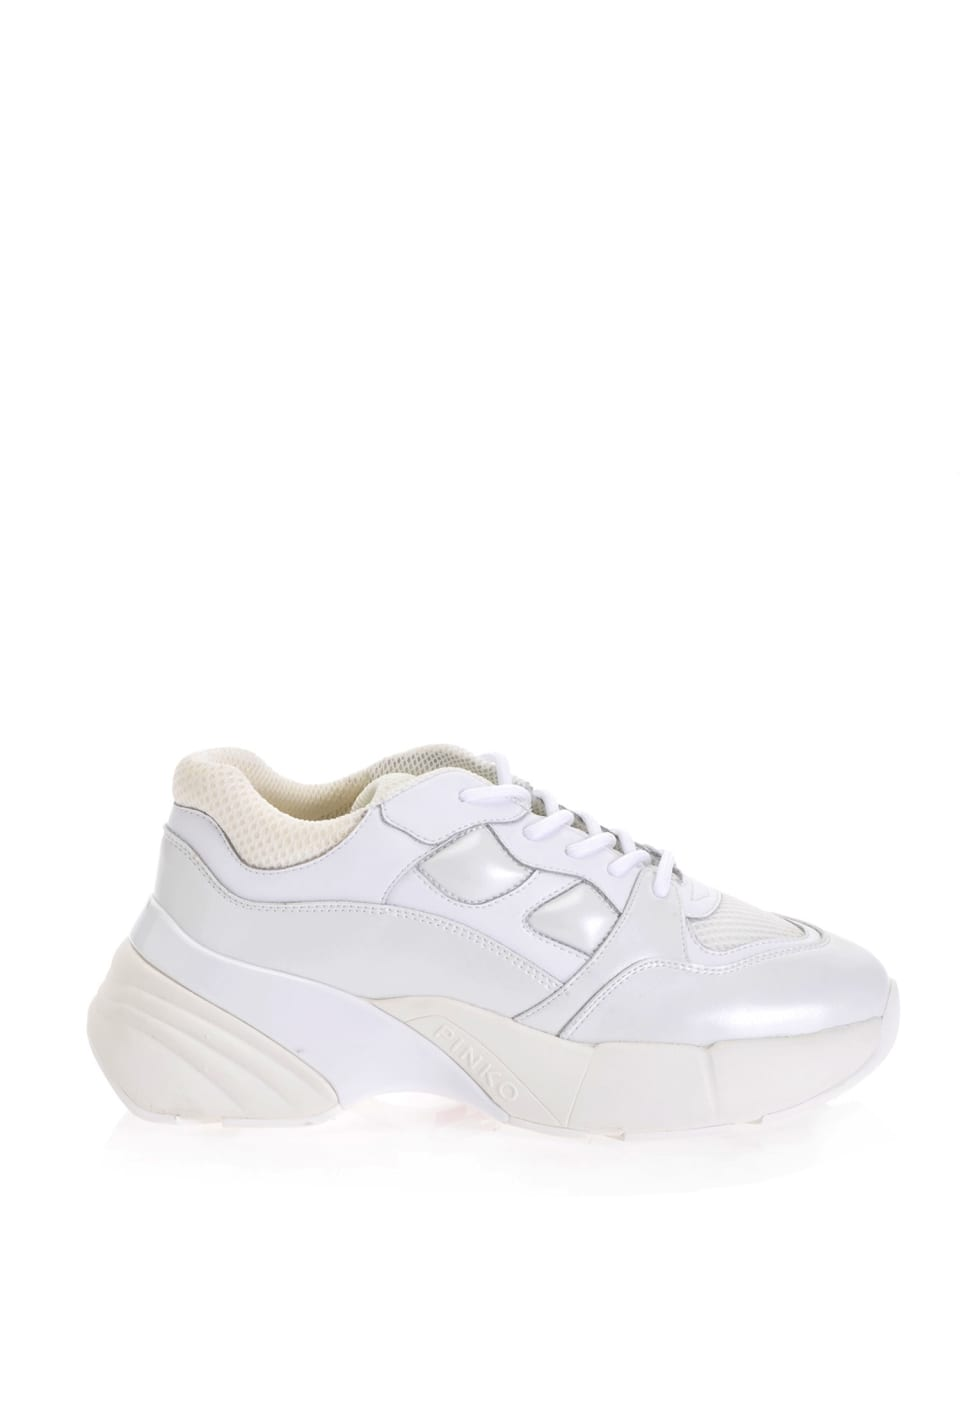 Pearl-look sneakers - Pinko